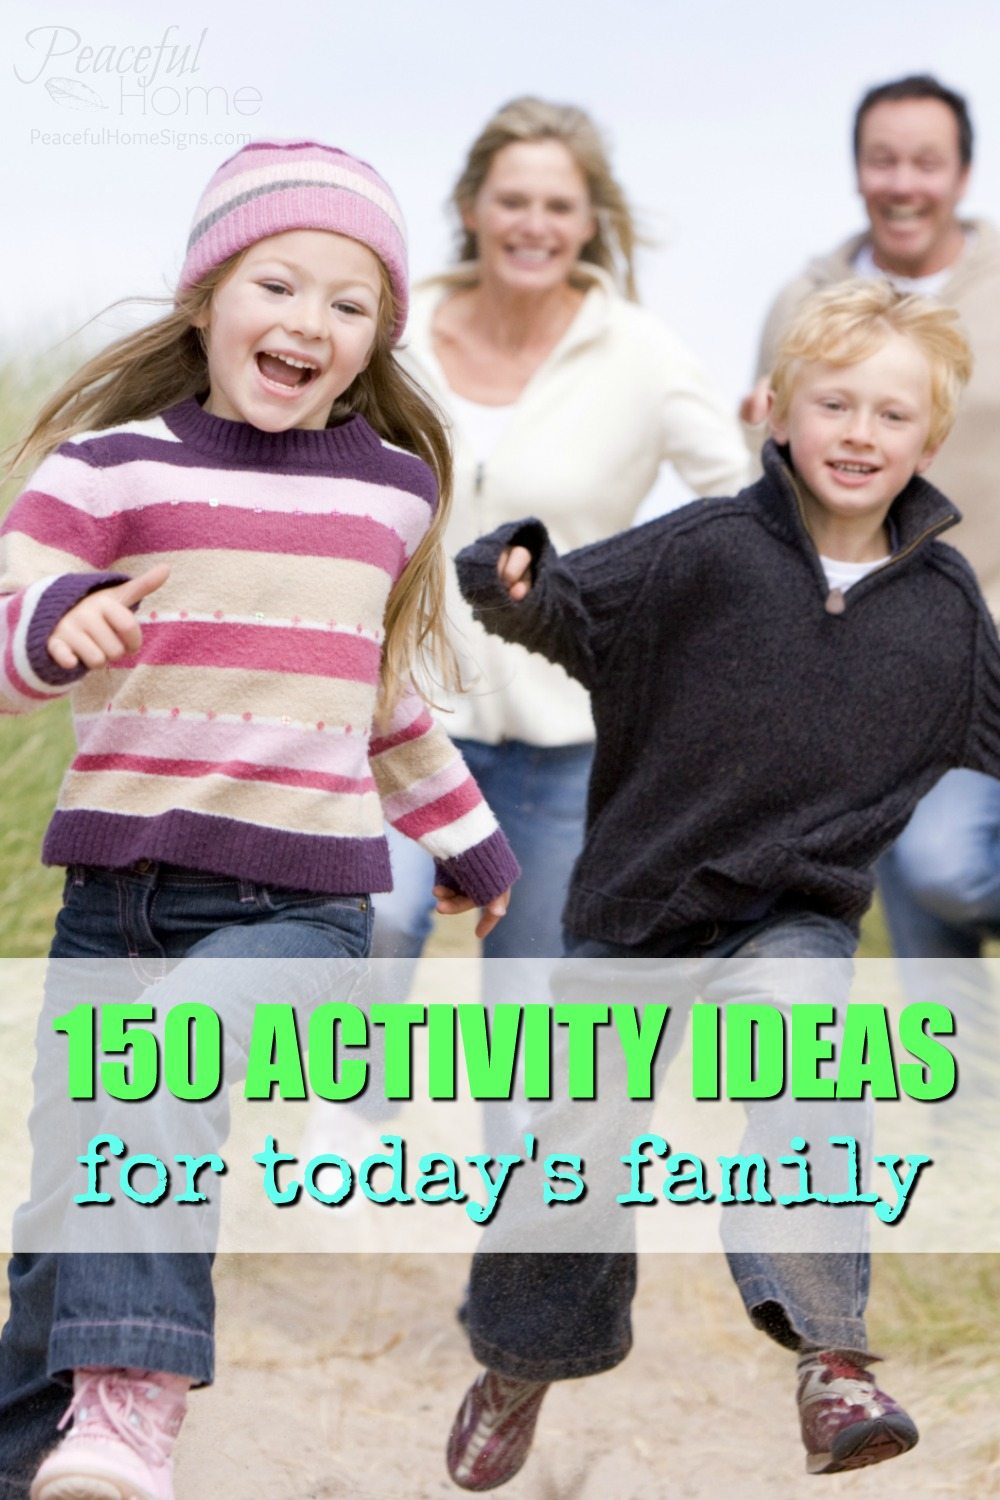 150 Activity Ideas for Today's Family | Screen Free Activities | Family Activities | Play as family | Stuff to Do With Kids | Weekend Activities | What to do with kids | Activities Outside | Teach kids about giving and serving